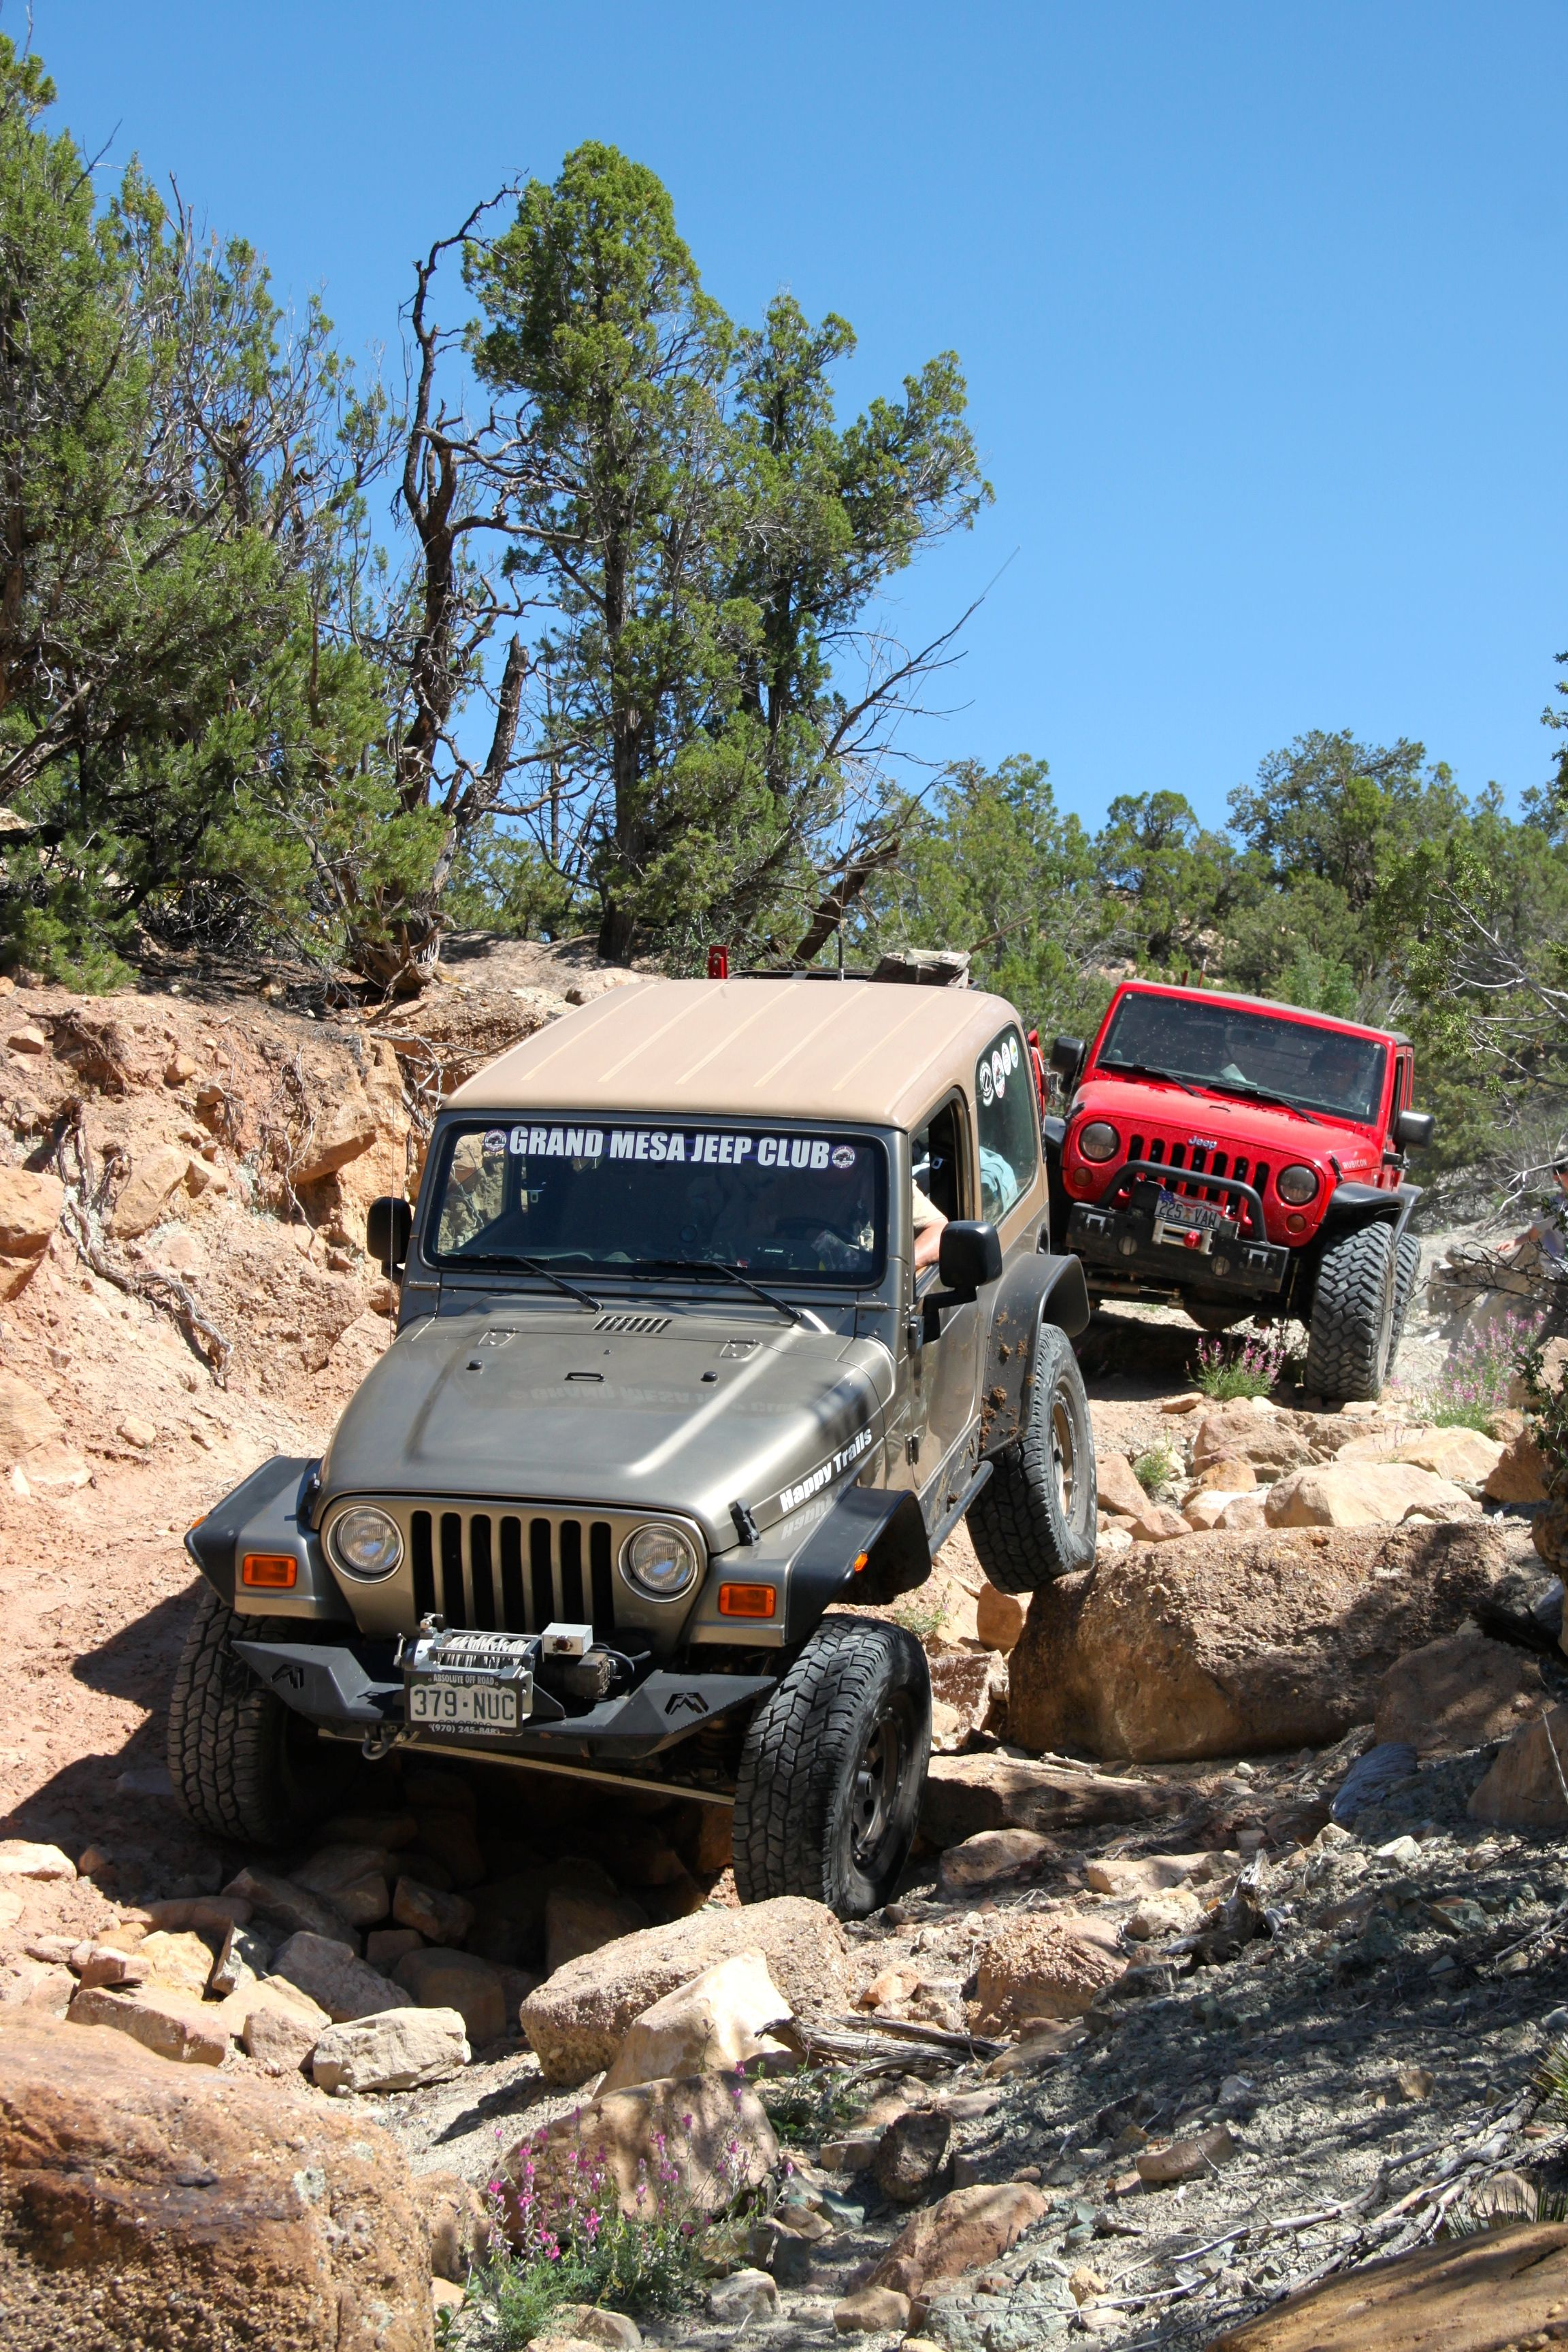 Jeep Trails Happy Trails On Gyration Wash Rock Junction 2014 The